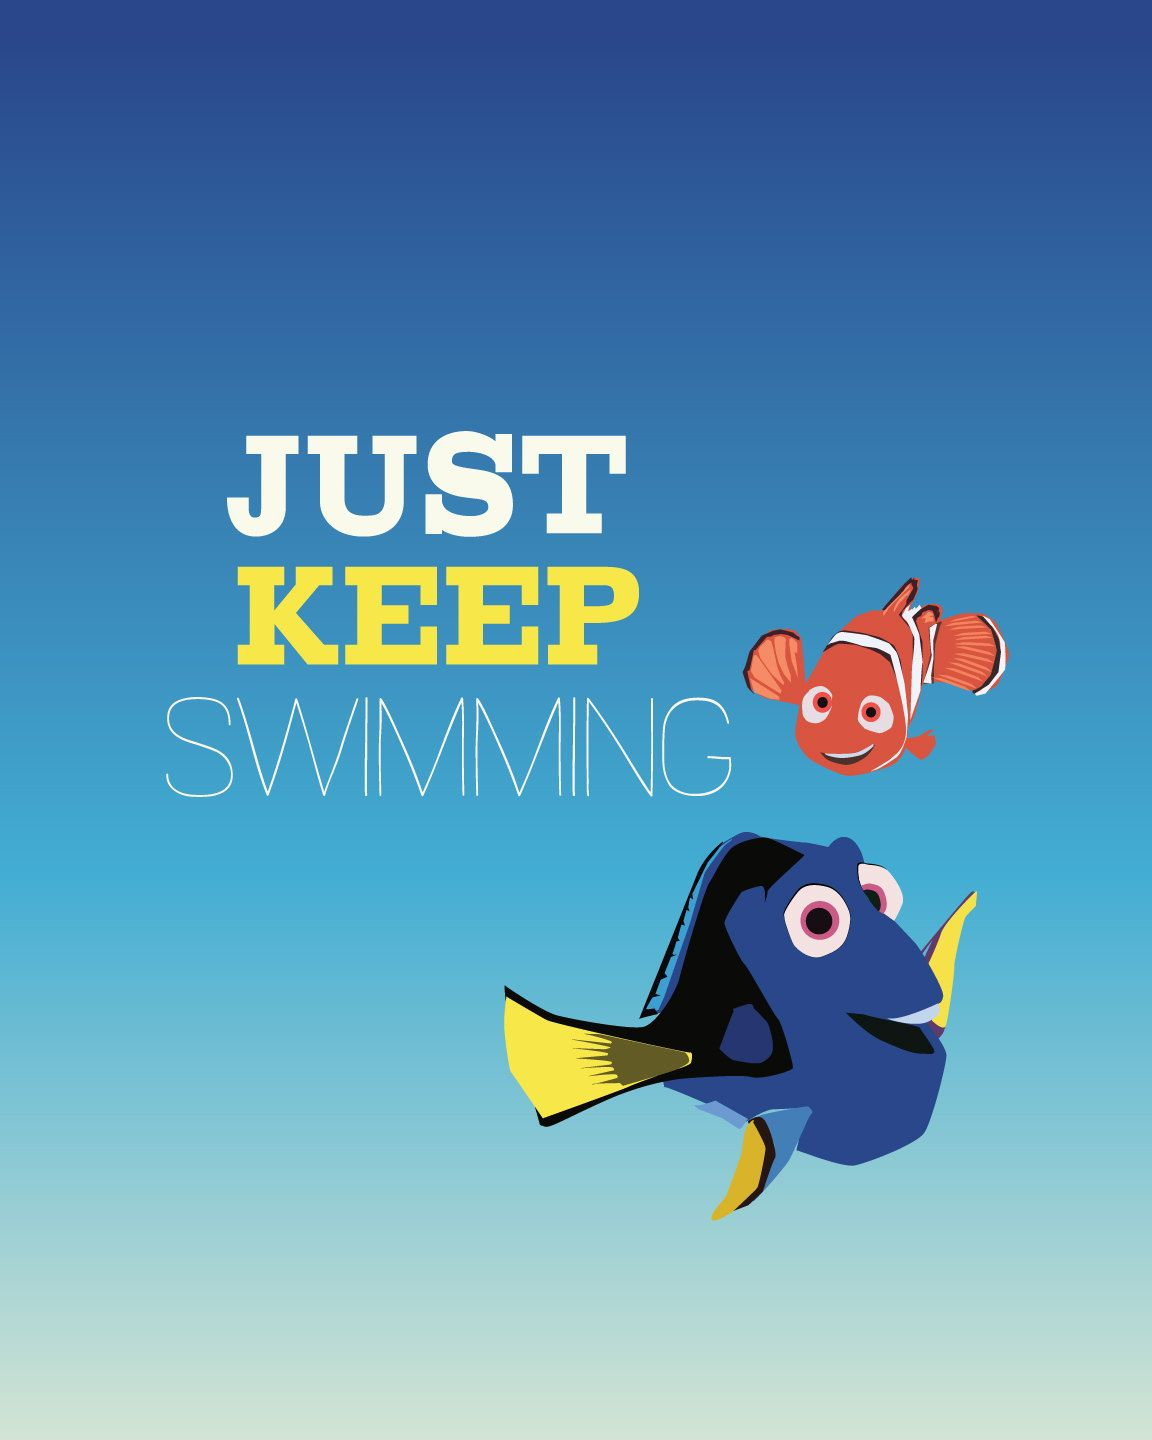 Finding nemo just keep swimming.. funny dory.. instant